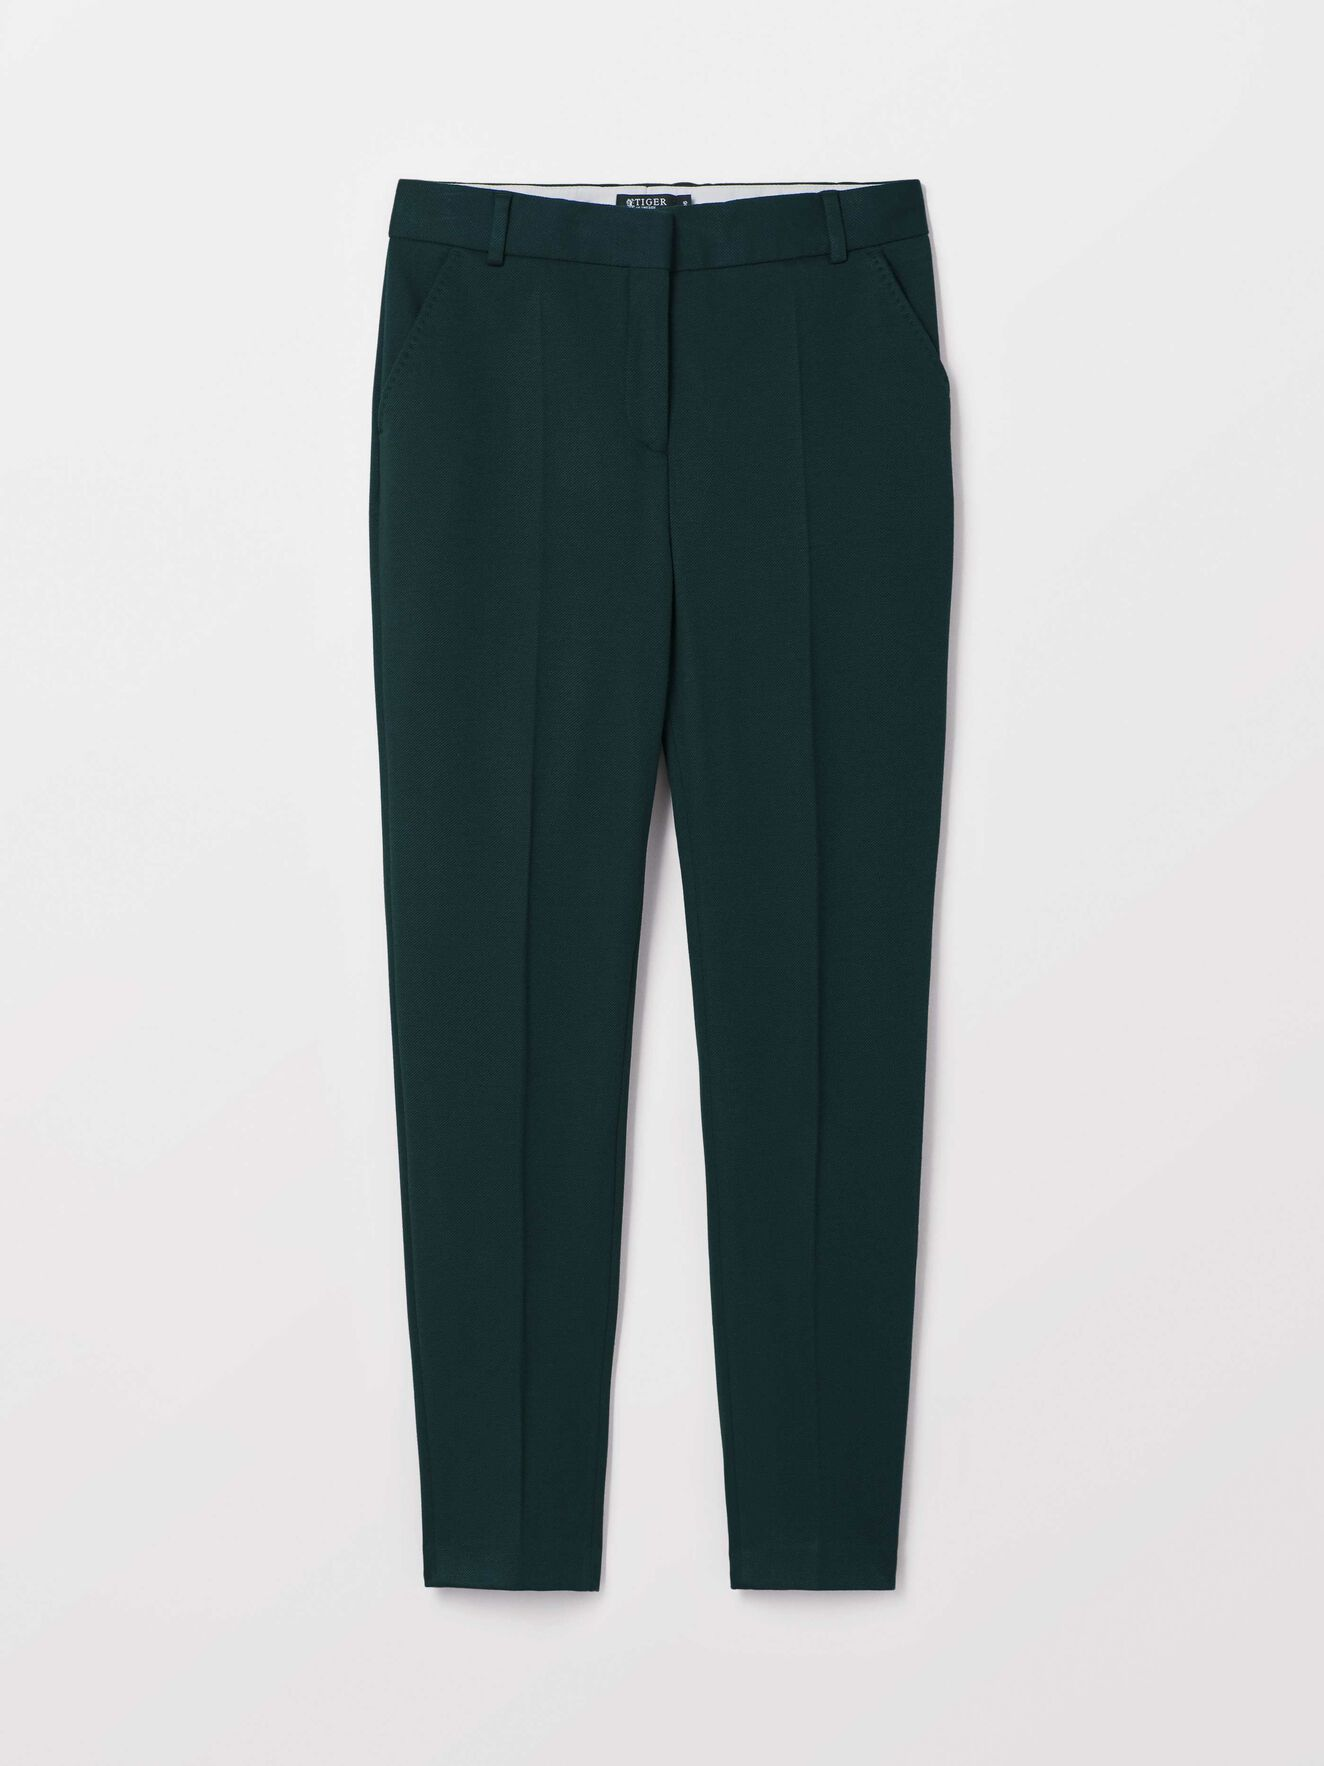 Blossom Trousers in Dark Forest from Tiger of Sweden